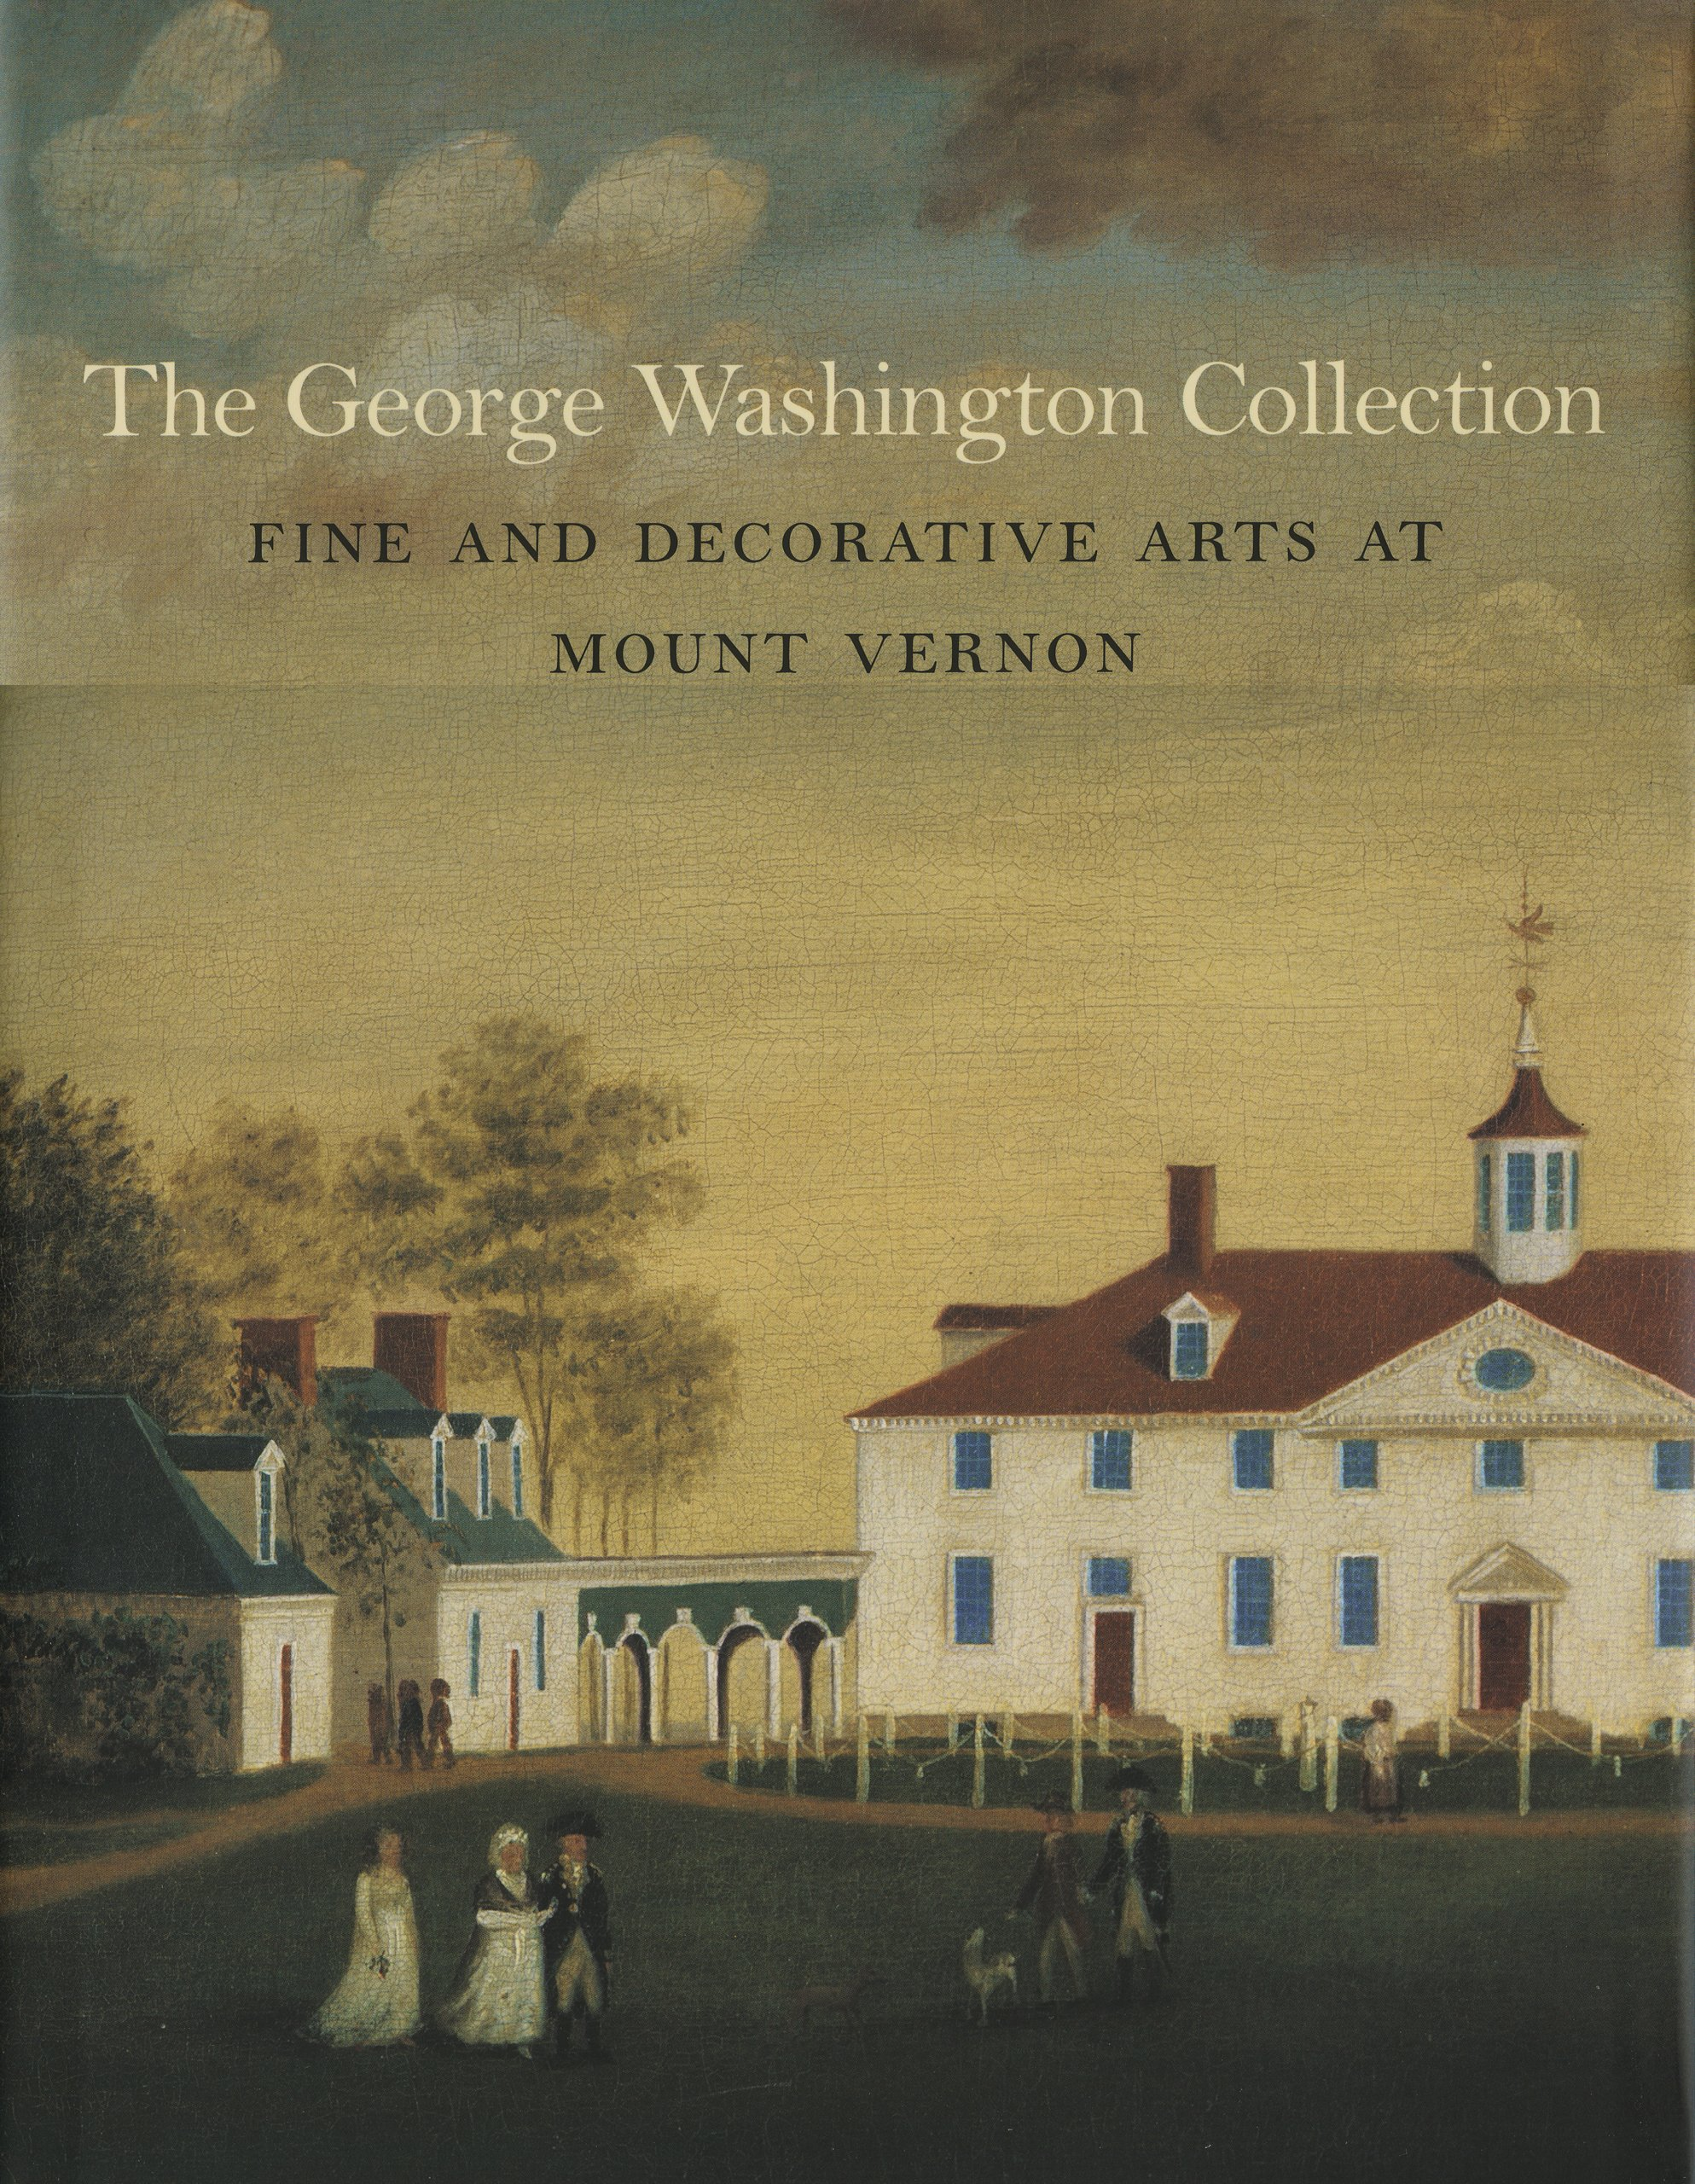 The George Washington Collection: Fine and Decorative Arts at Mount Vernon PDF